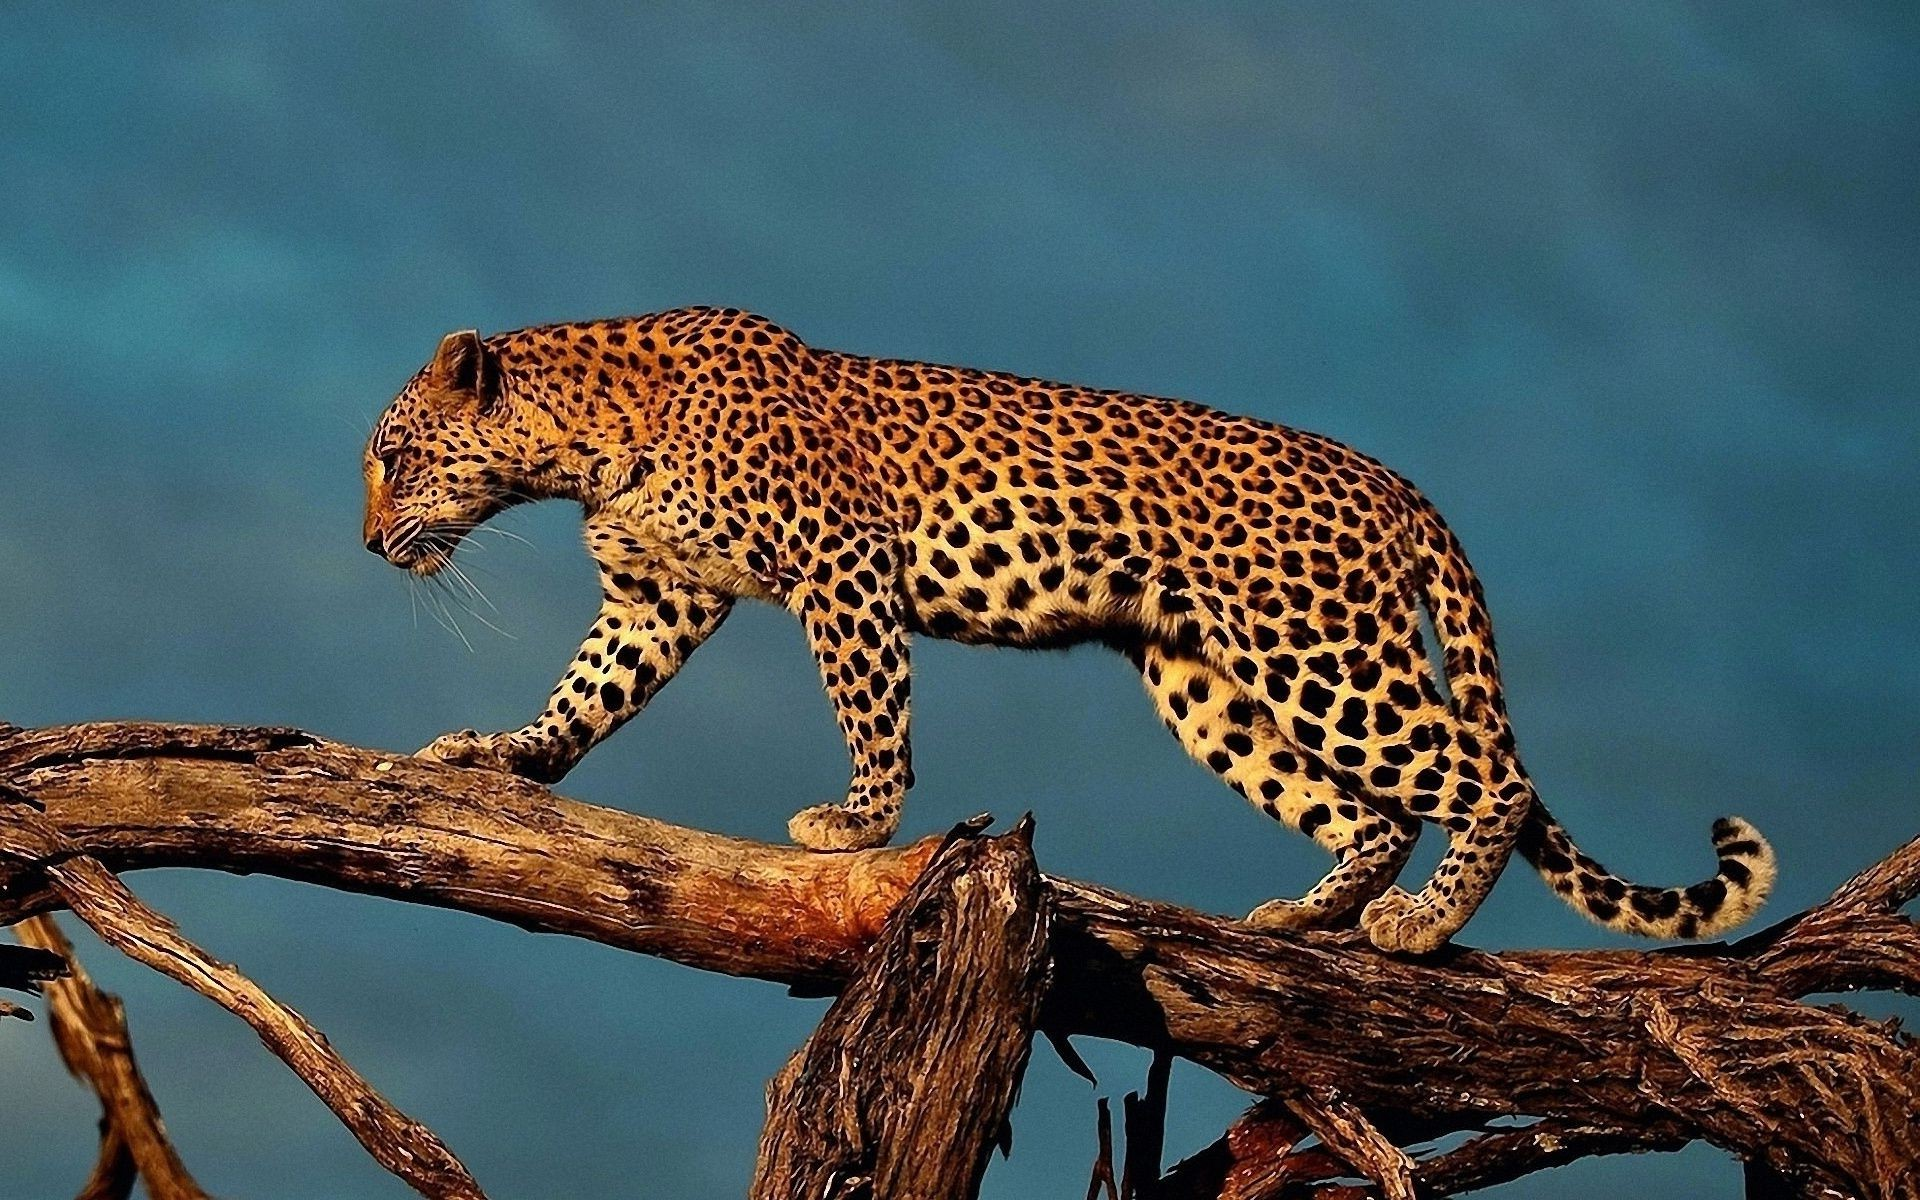 The leopard is on the tree trunk